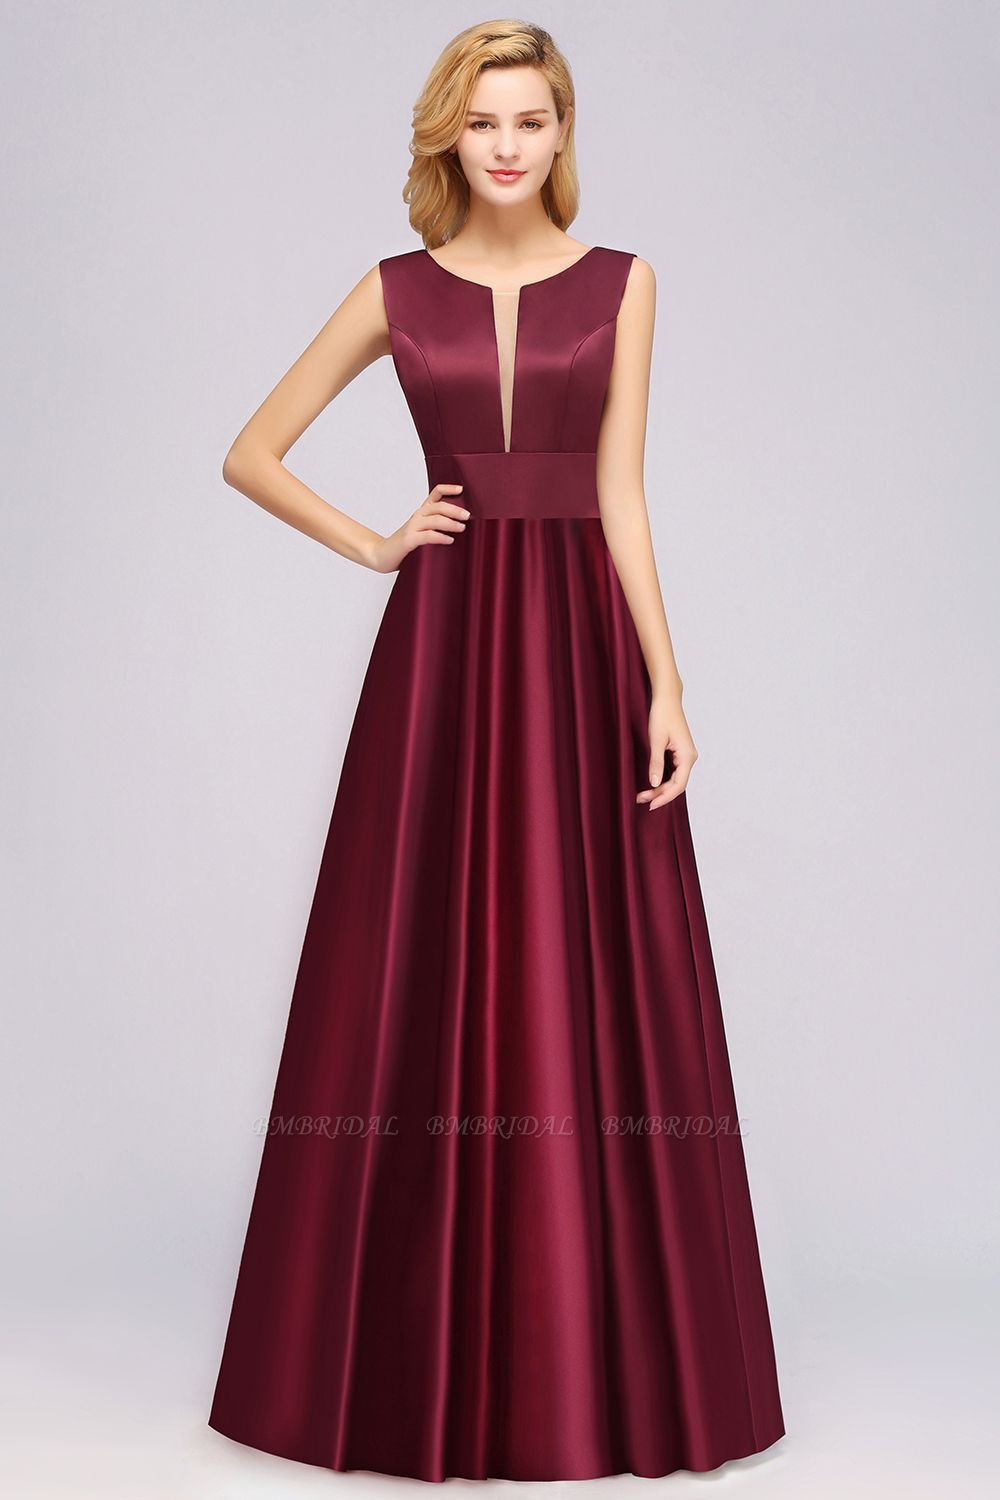 Vintage Deep-V-Neck Long Burgundy Bridesmaid Dress Online